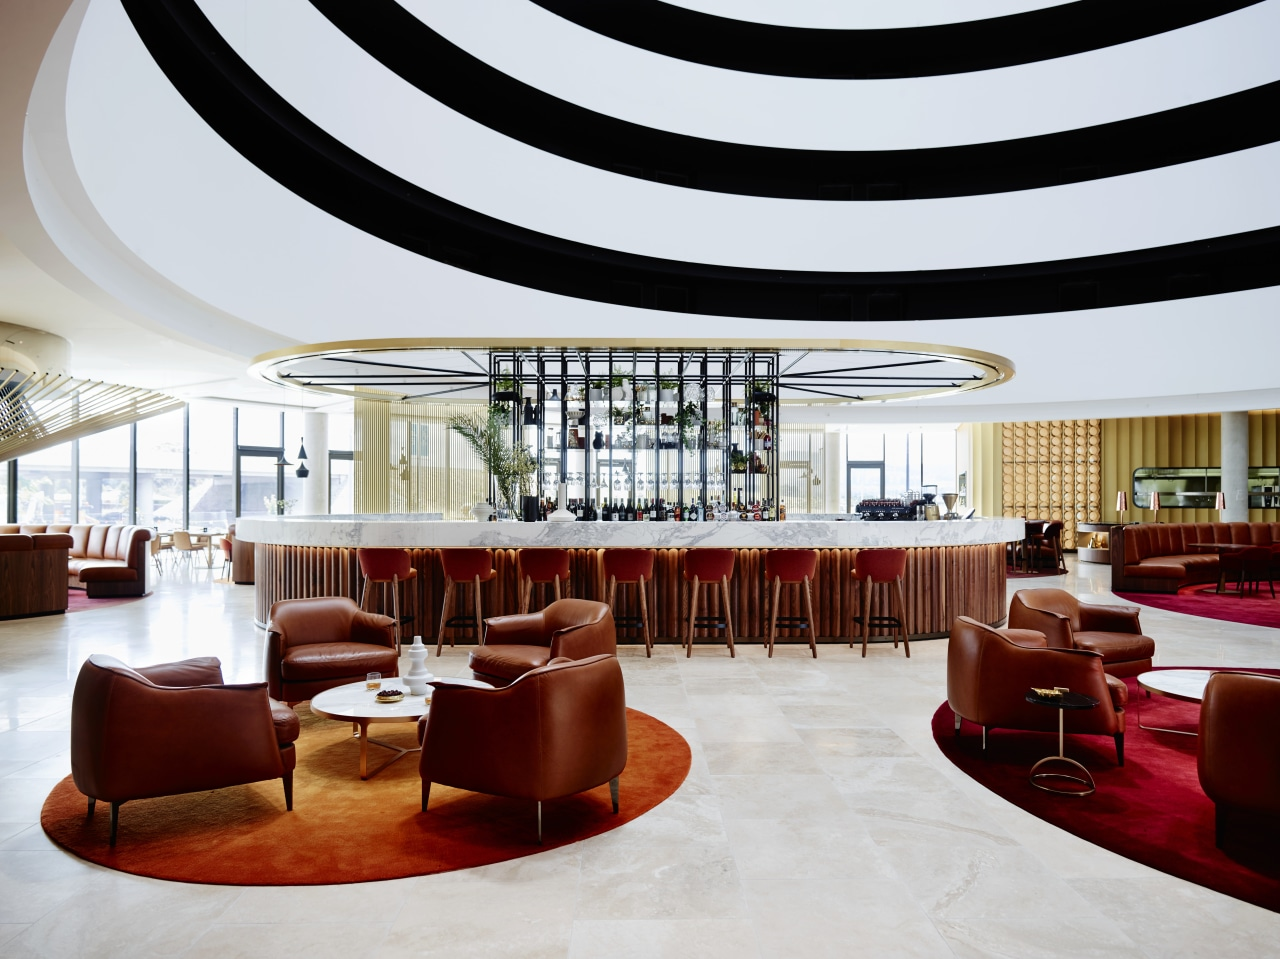 A curvaceous bar area provides the social focal ceiling, function hall, interior design, lobby, restaurant, table, white